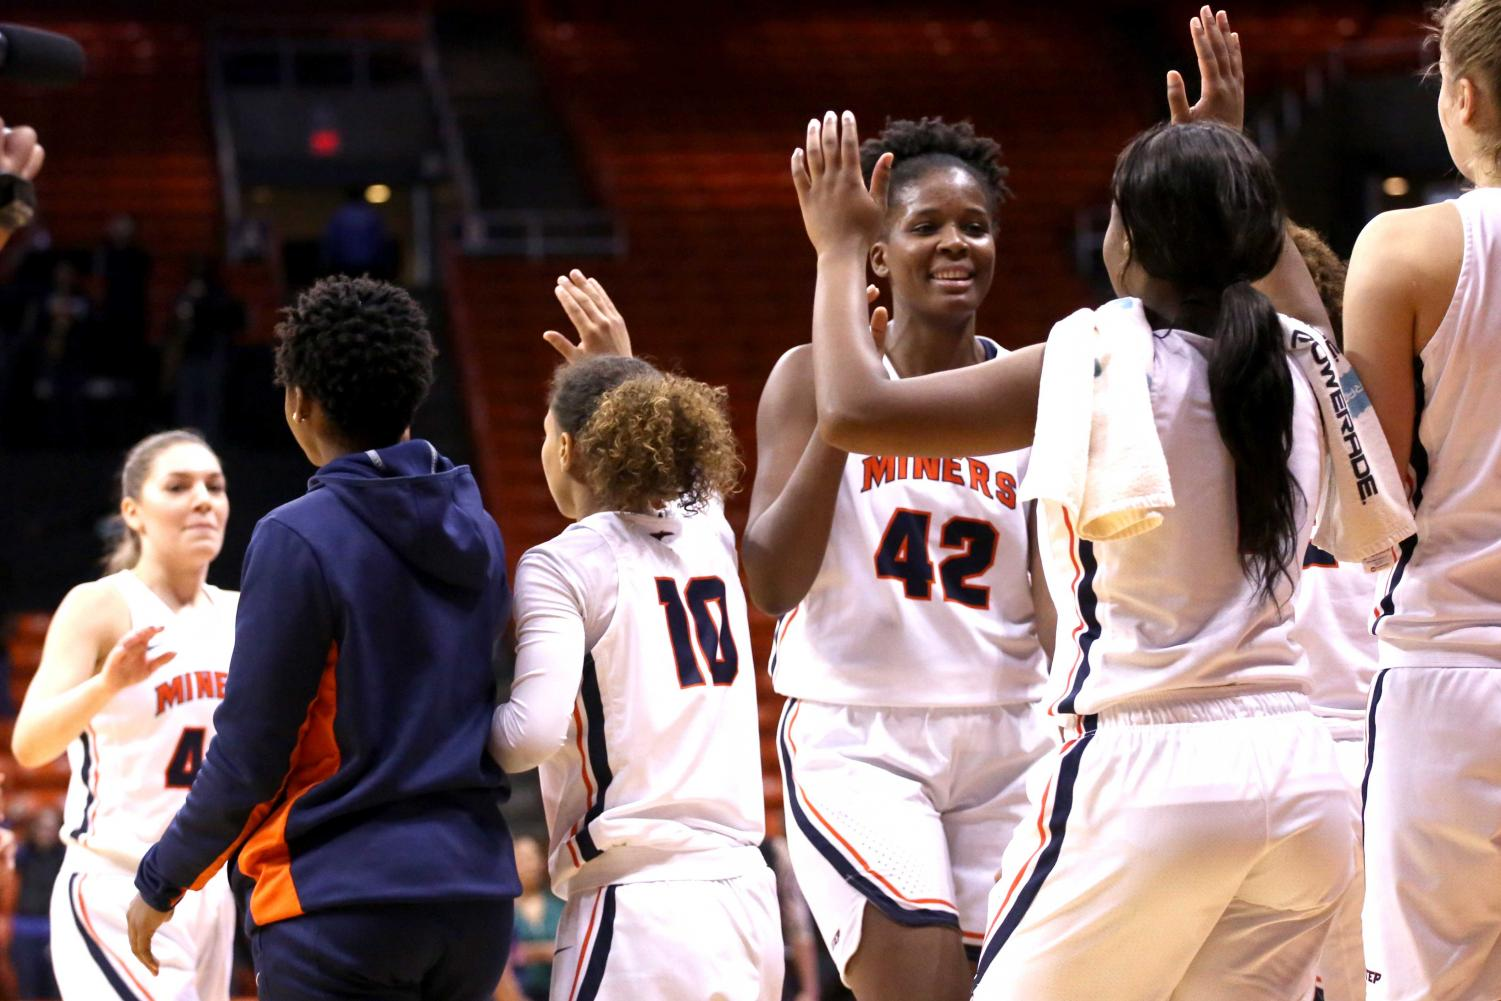 The UTEP women's basketball team leads Conference USA in rebounding margin with a 7.3 advantage on the boards per game.